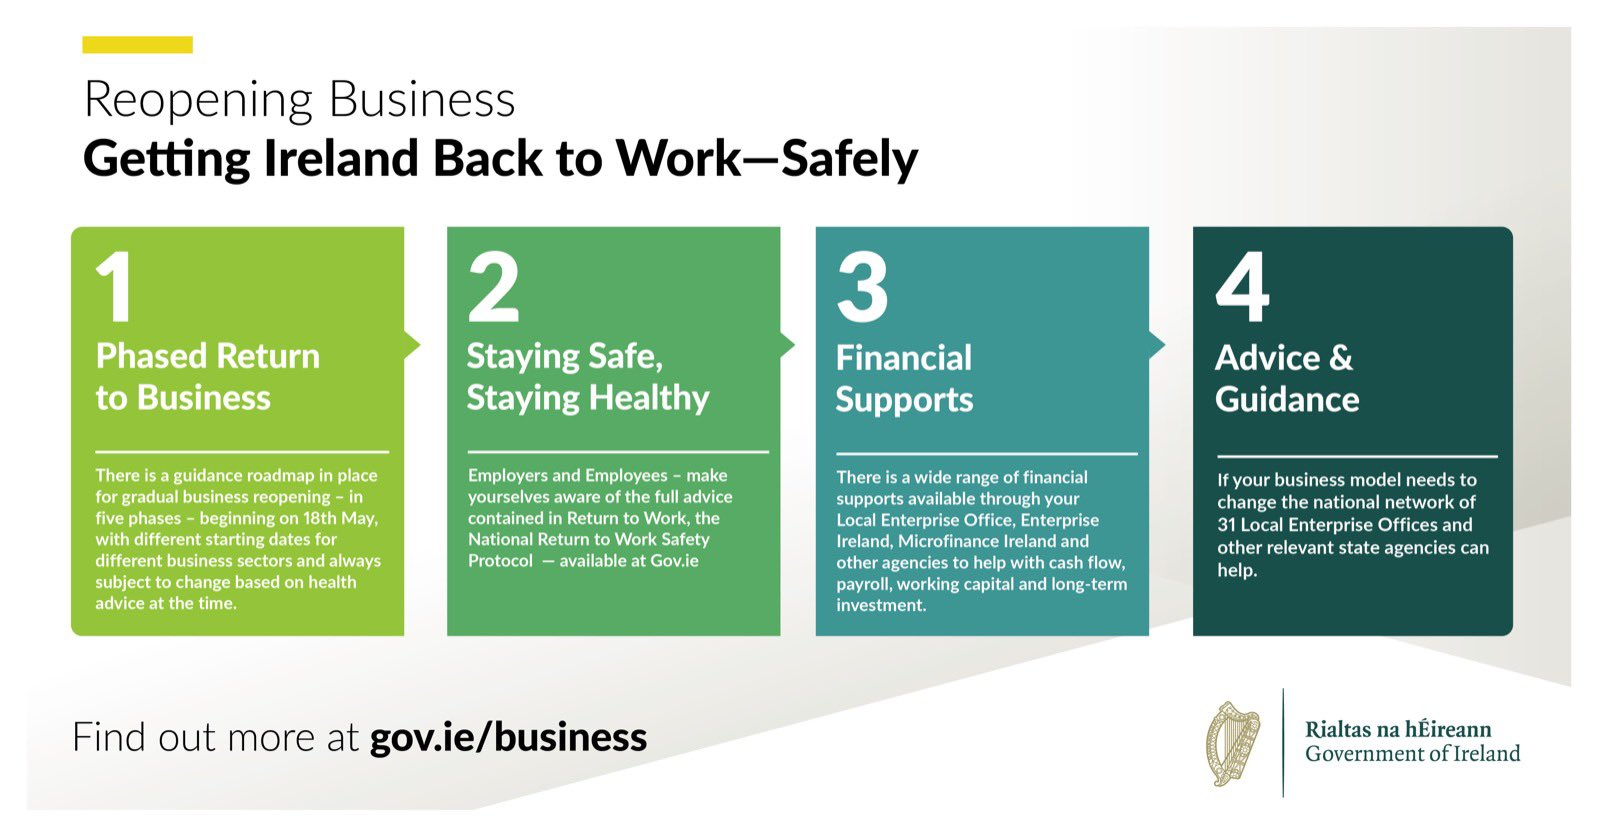 Back to Work Safety 2020